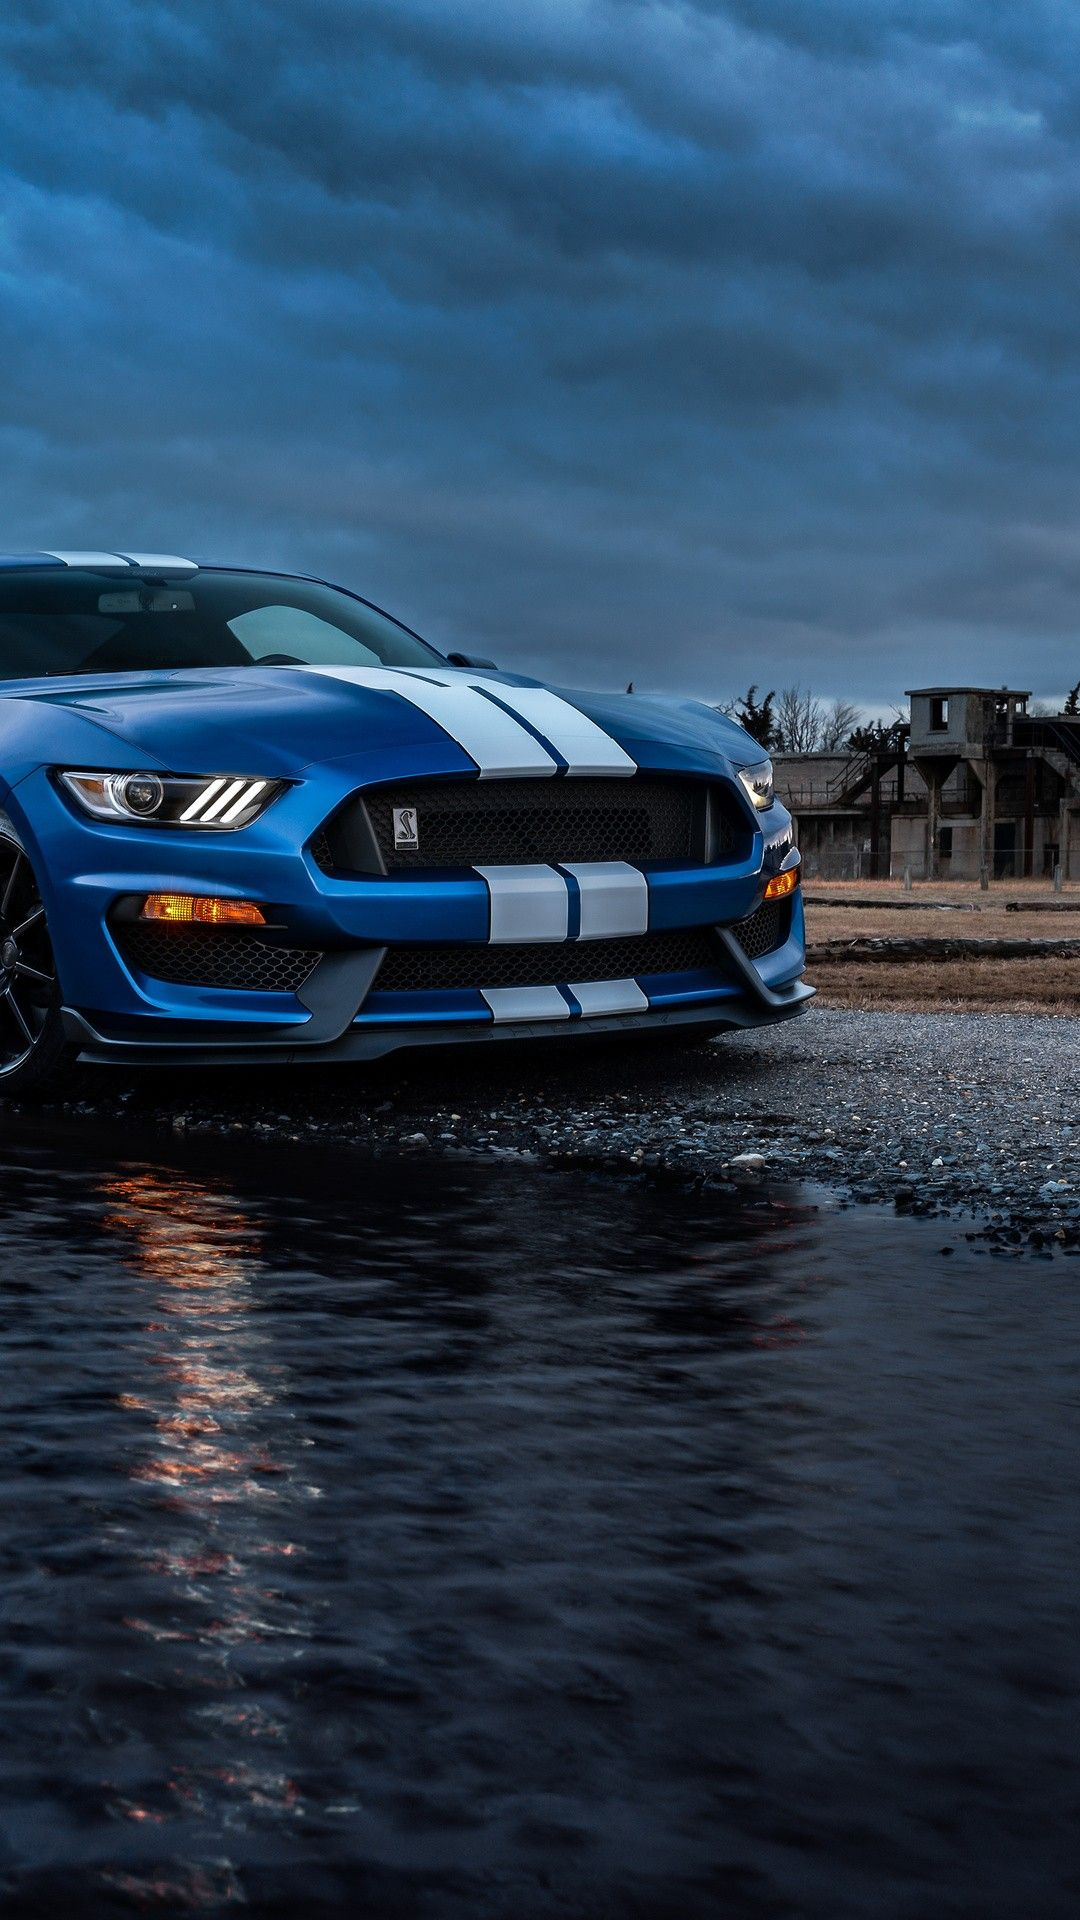 Cars Mobile Full Hd Wallpapers 1080x1920 In 2021 Mustang Wallpaper Shelby Gt500 Mustang